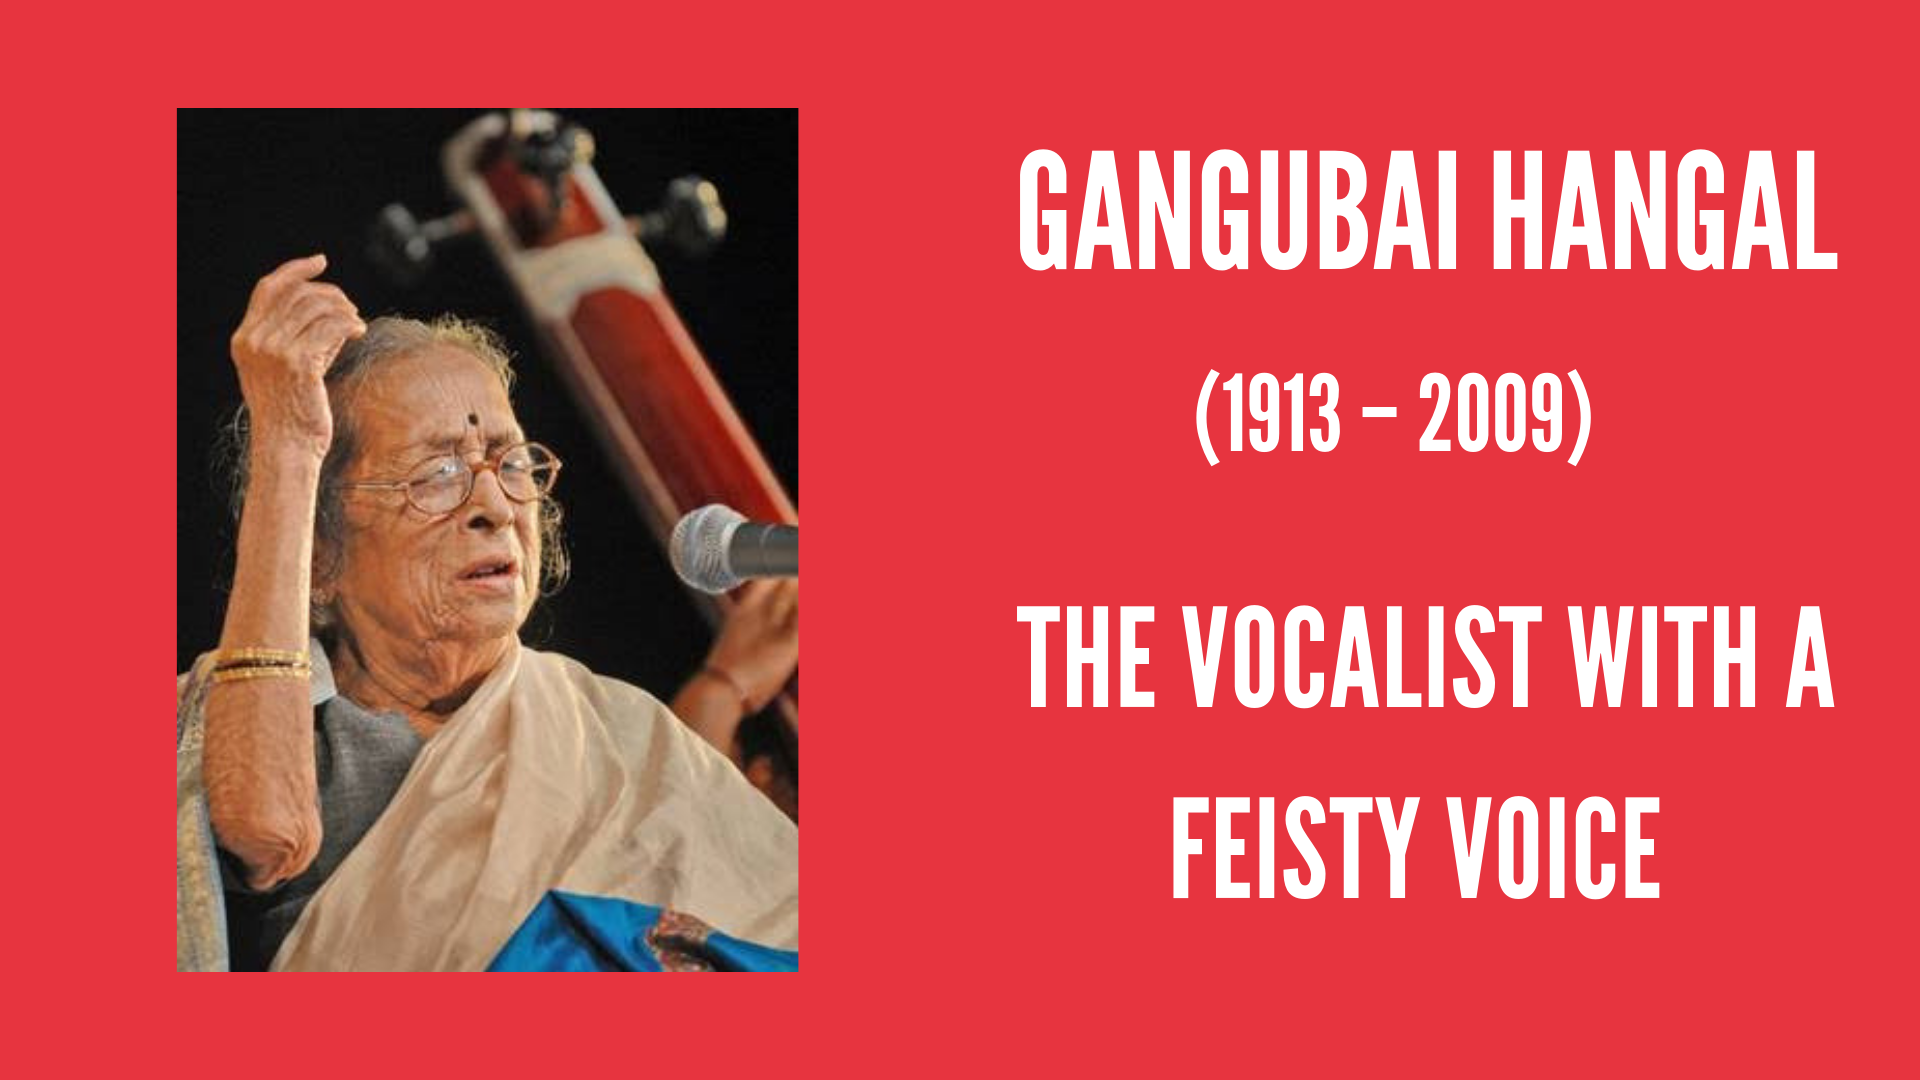 Gangubai Hangal: The Vocalist With A Feisty Voice |#IndianWomenInHistory